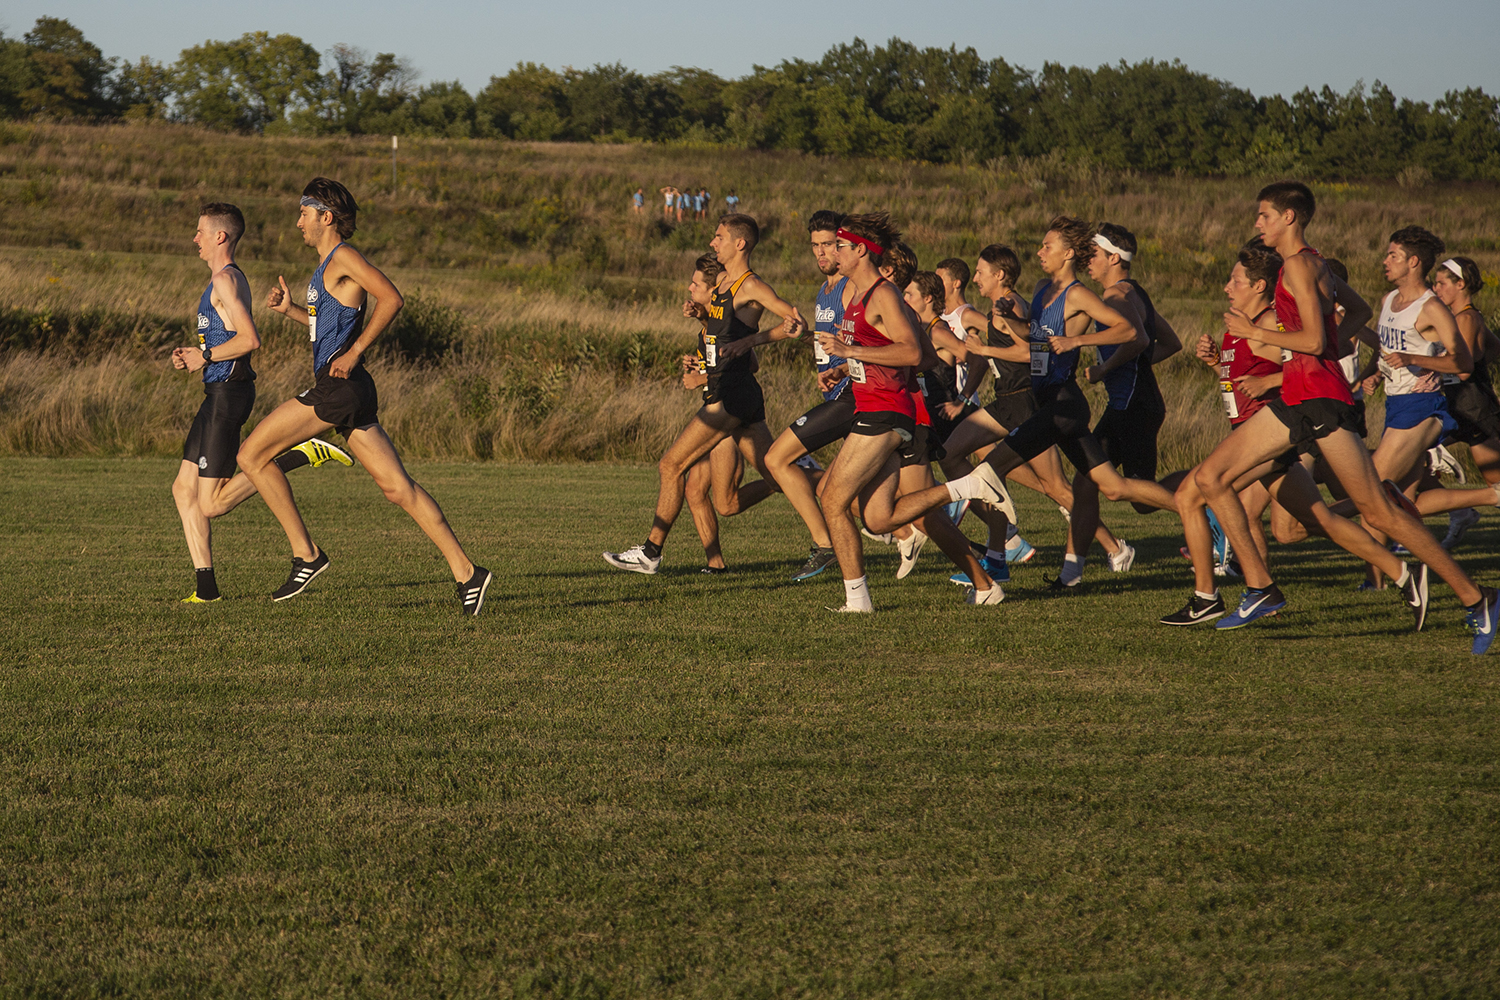 Drake%E2%80%99s+Adam+Fogg+and+Kyle+Brandt+take+an+early+lead+in+the+6k+during+the+Hawkeye+Invitational+at+Ashton+Cross+Country+Course+on+Friday%2C+September+6%2C+2019.+Fogg+went+on+to+win+the+race+with+a+time+of+18%3A06.8.+The+Hawkeyes+defeated+six+other+teams+to+finish+first+overall+for+both+men%E2%80%99s+and+women%E2%80%99s+races.